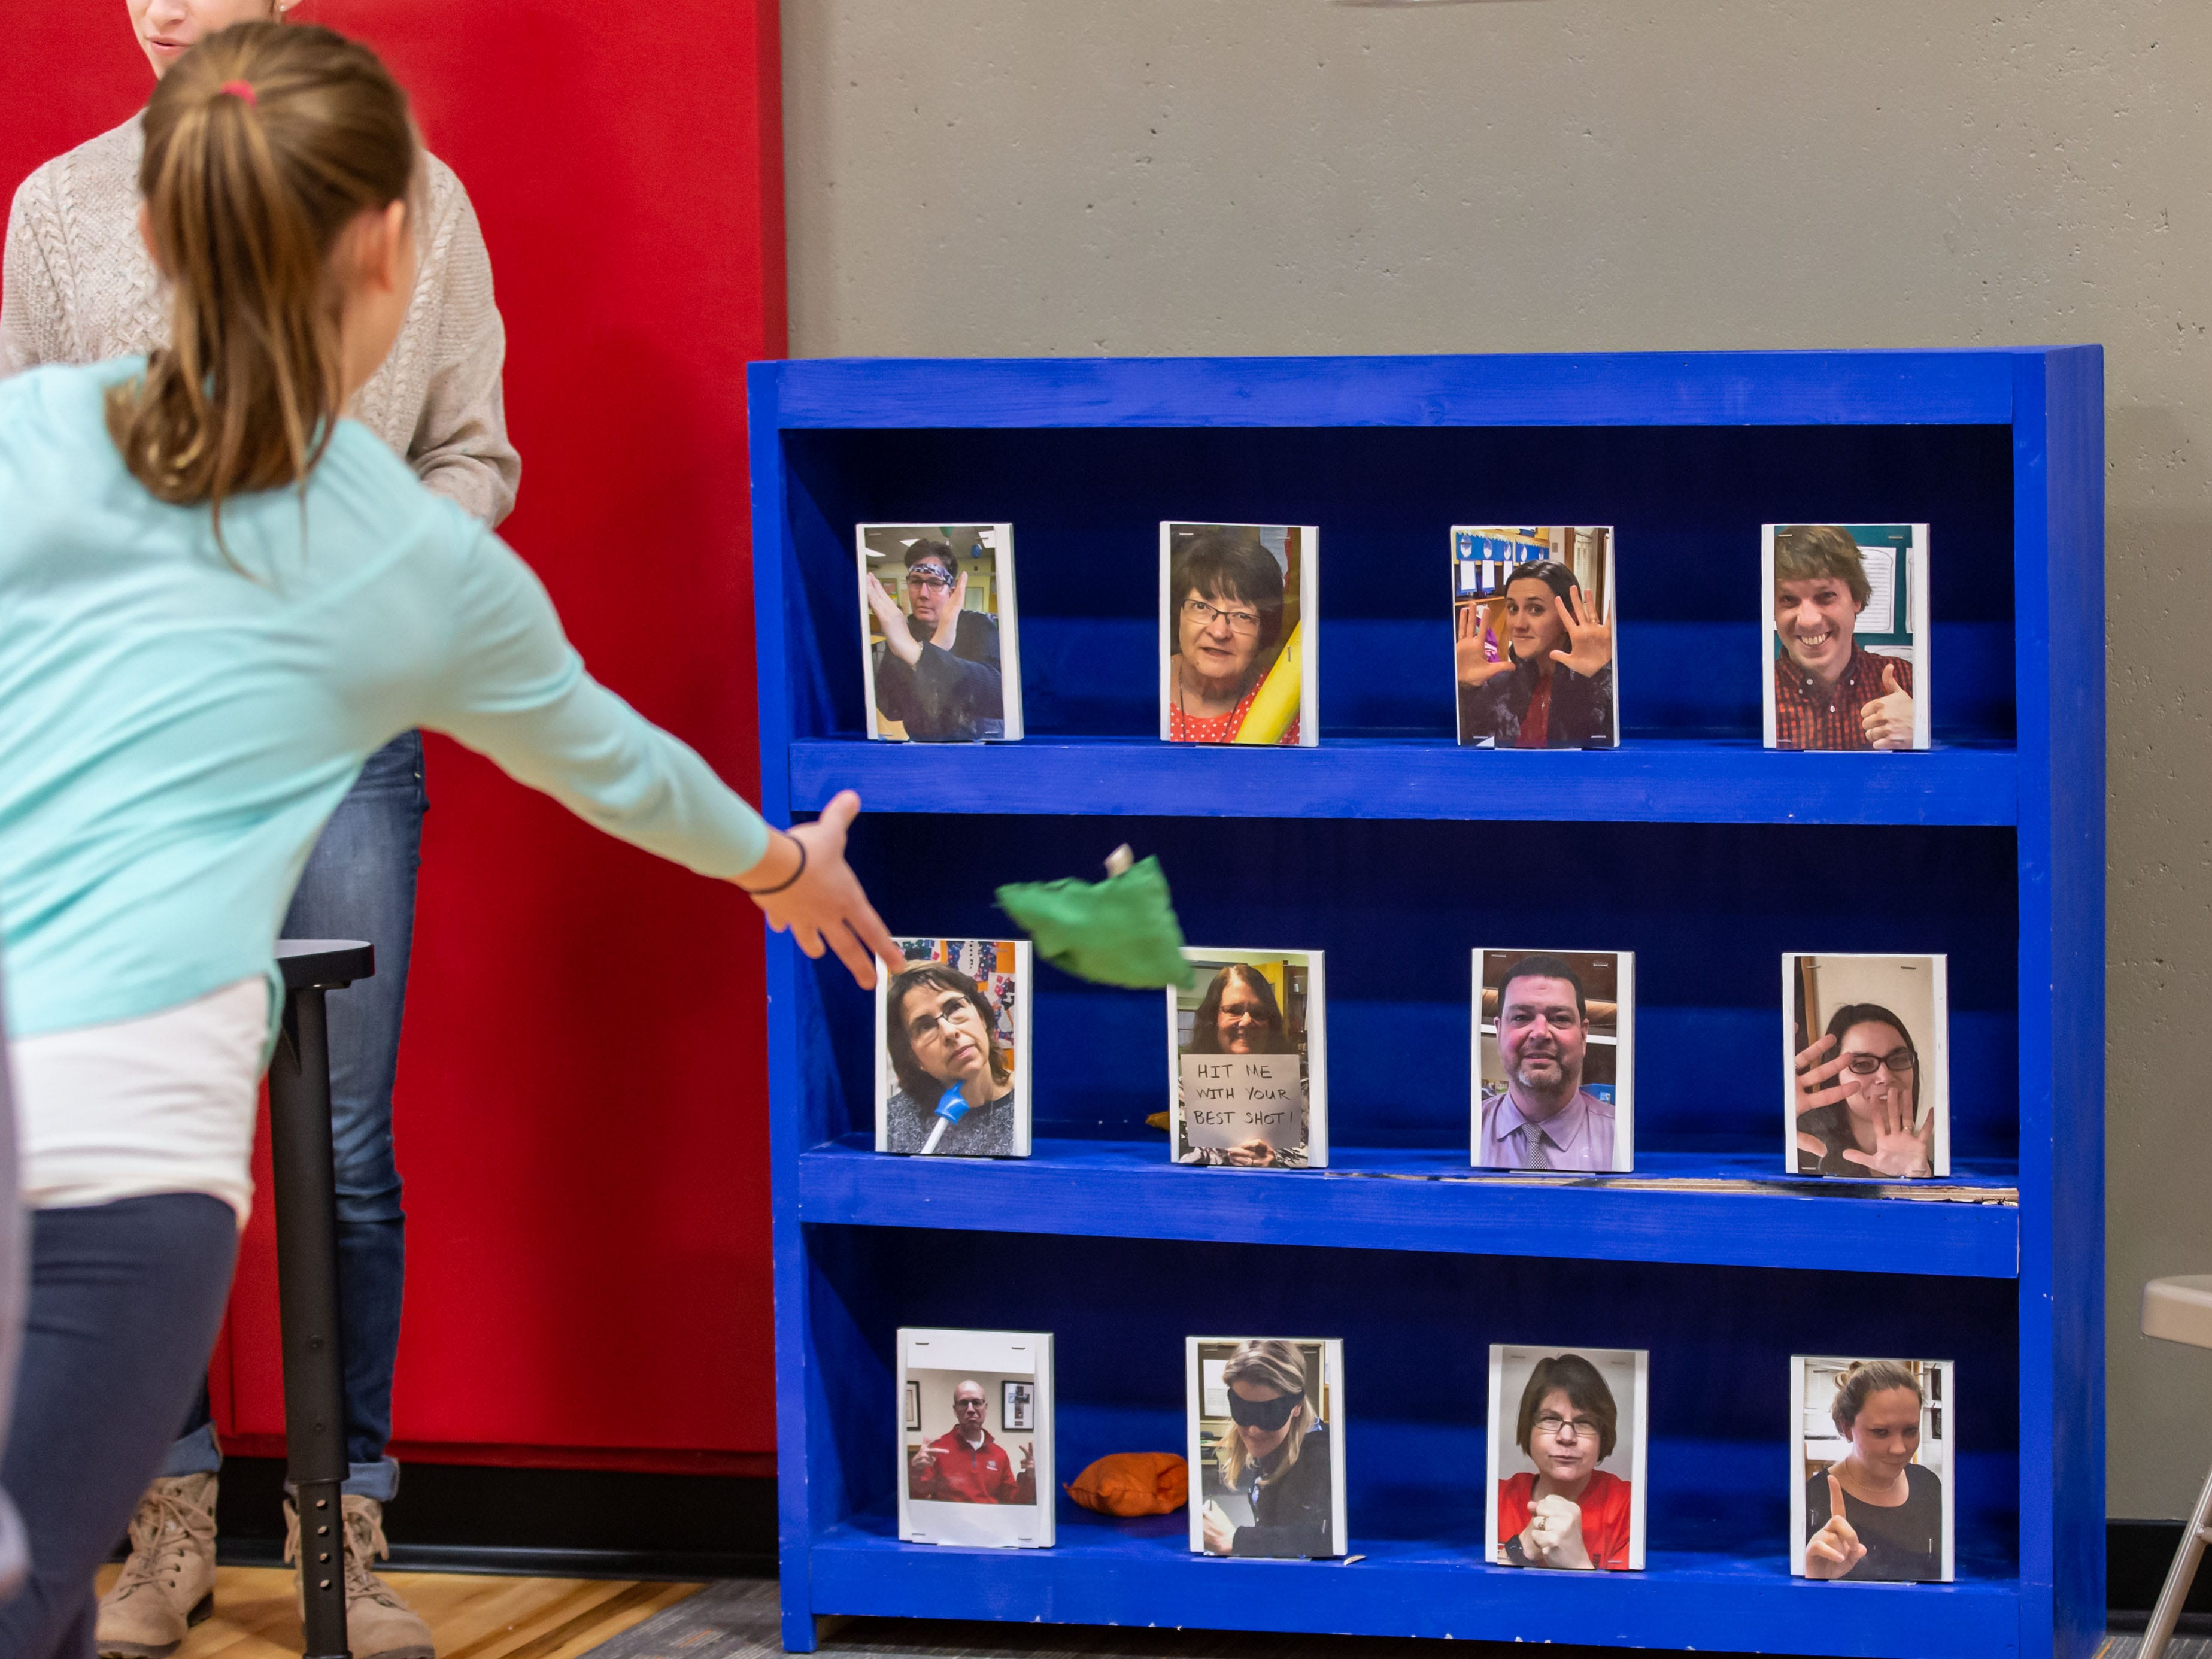 Attendees take aim on teacher's pictures during the Winter Carnival at St. Matthew's Lutheran School in Oconomowoc on Saturday, March 9, 2019. The event featured a huge prize booth, games, food, a silent auction and more. Proceeds from the Winter Carnival will be used to purchase non budgeted school items.